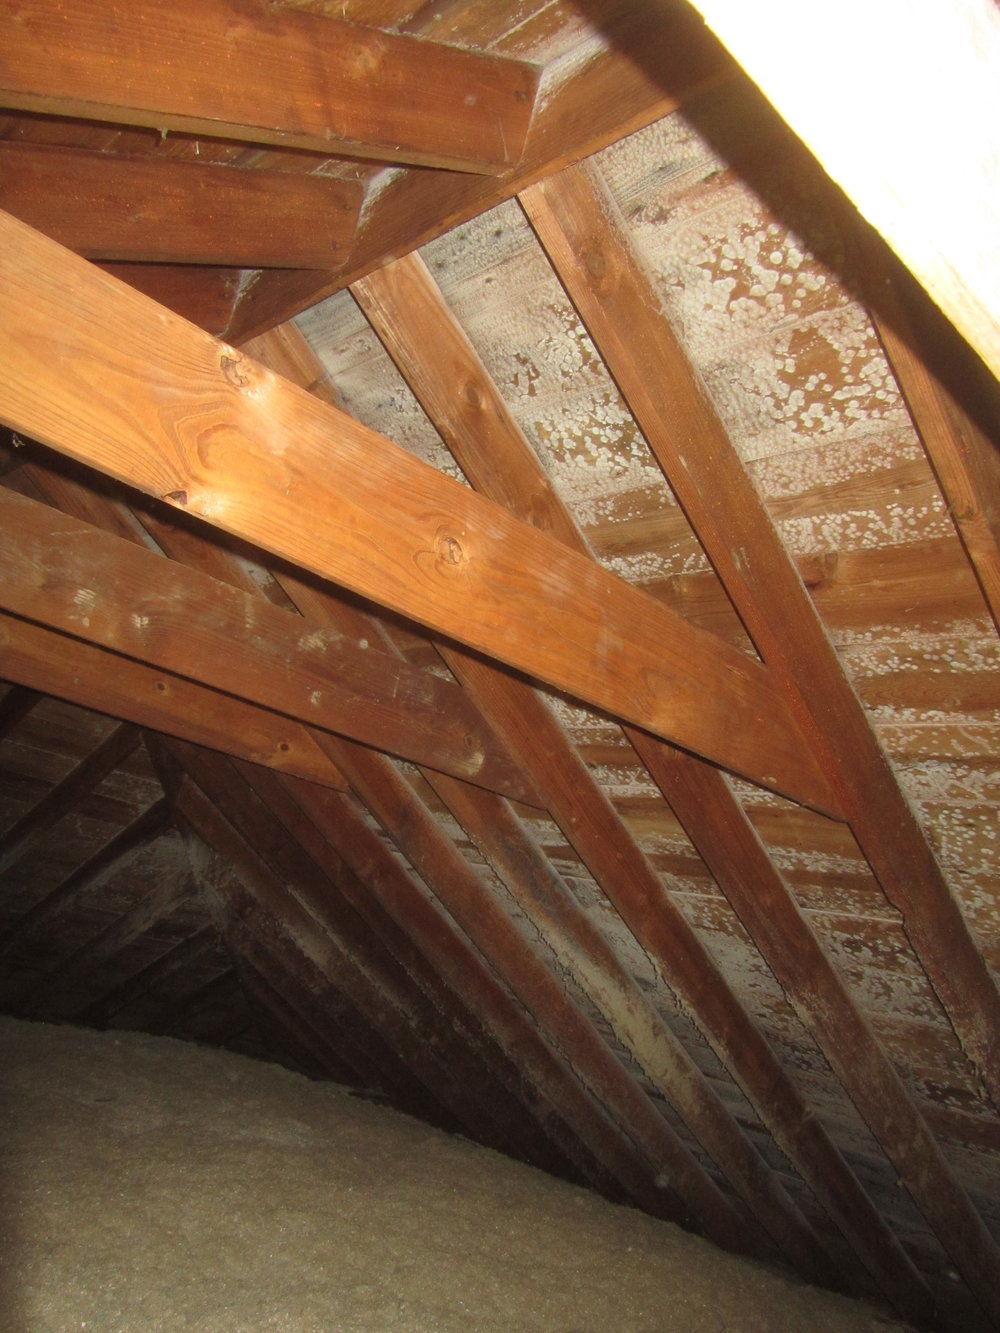 Evidence of mold growth at attic framing.